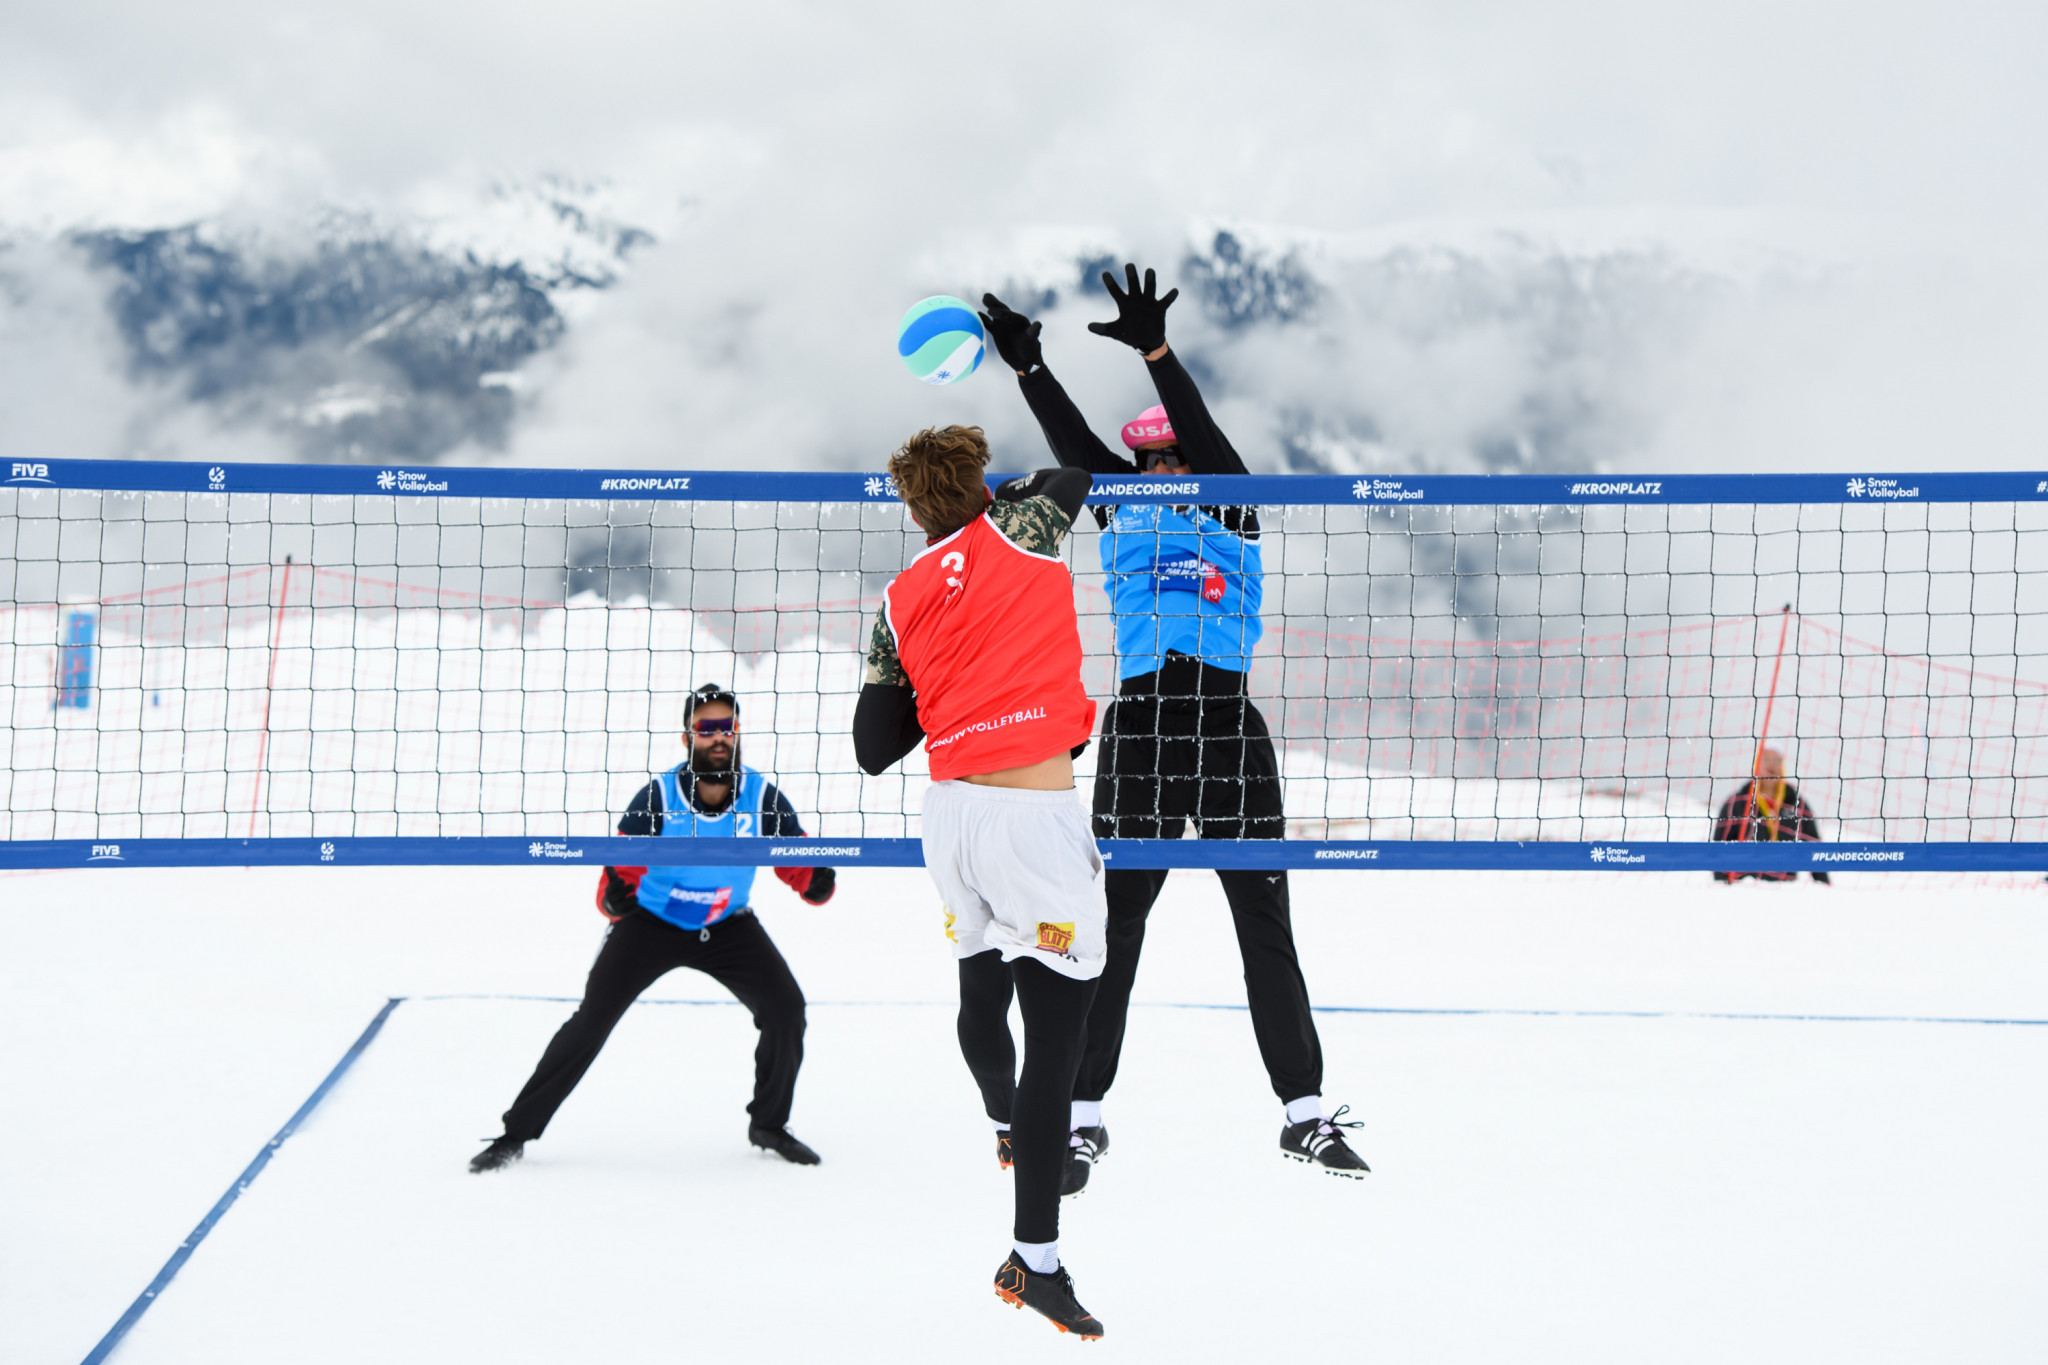 United States win title at Kronplatz in first FIVB Snow Volleyball World Tour event